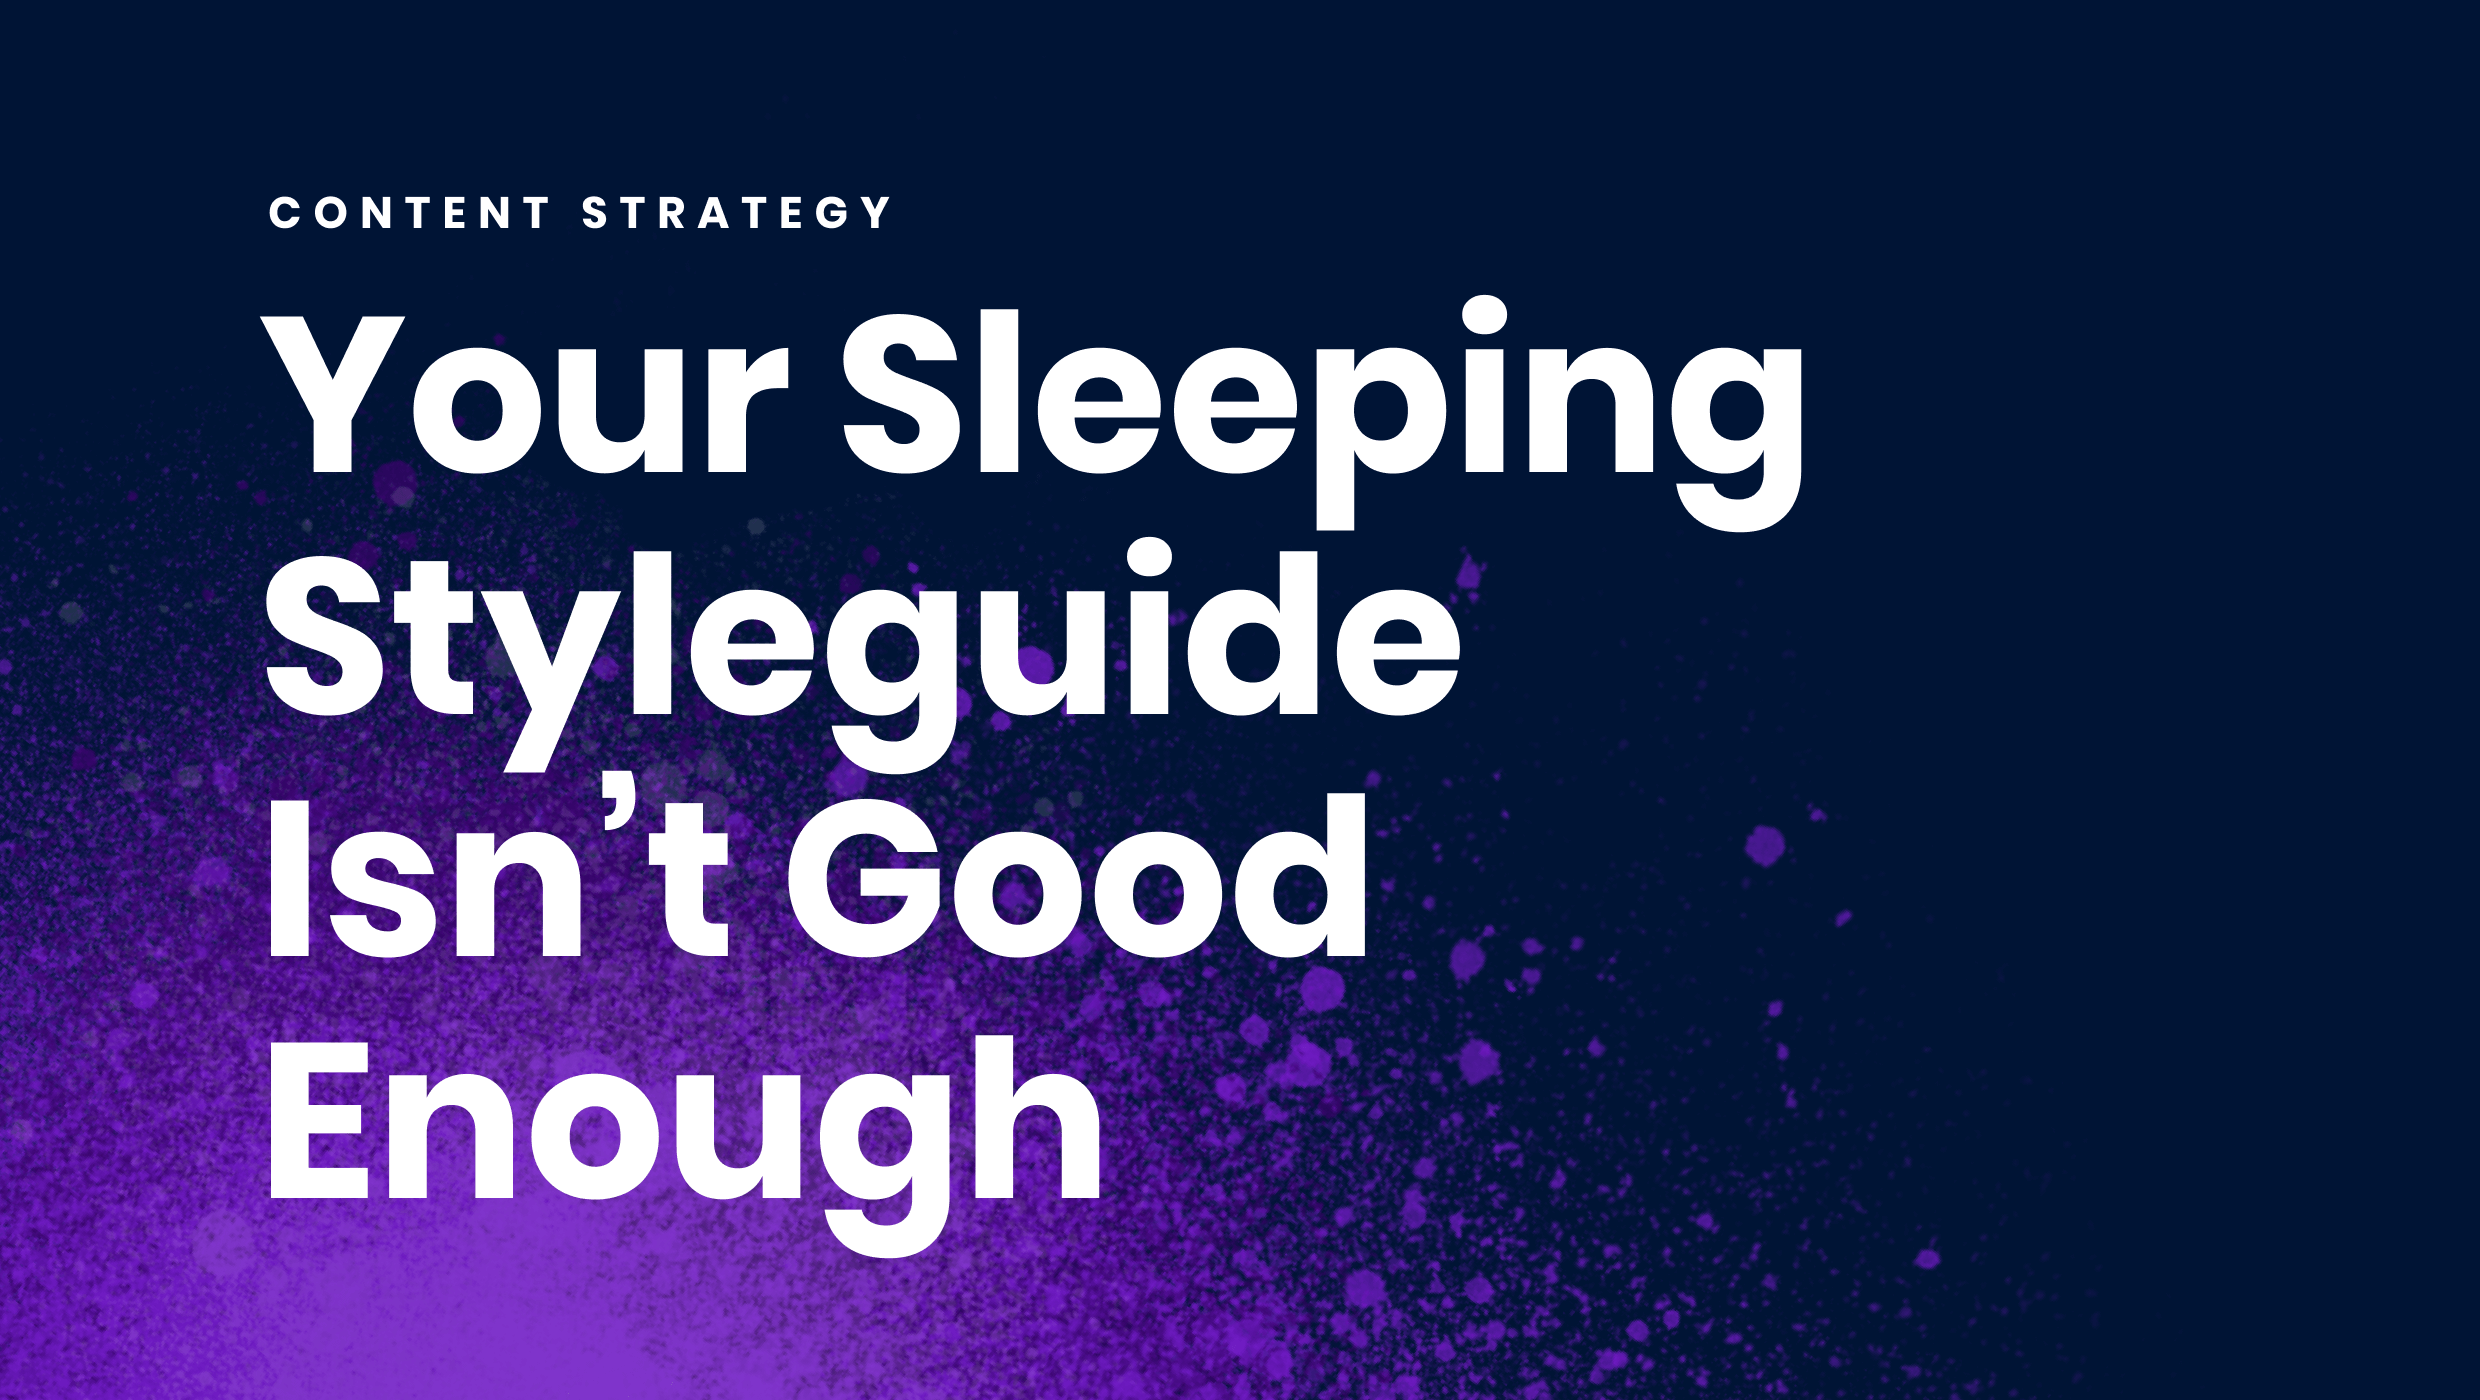 Your Sleeping Styleguide Isn't Good Enough